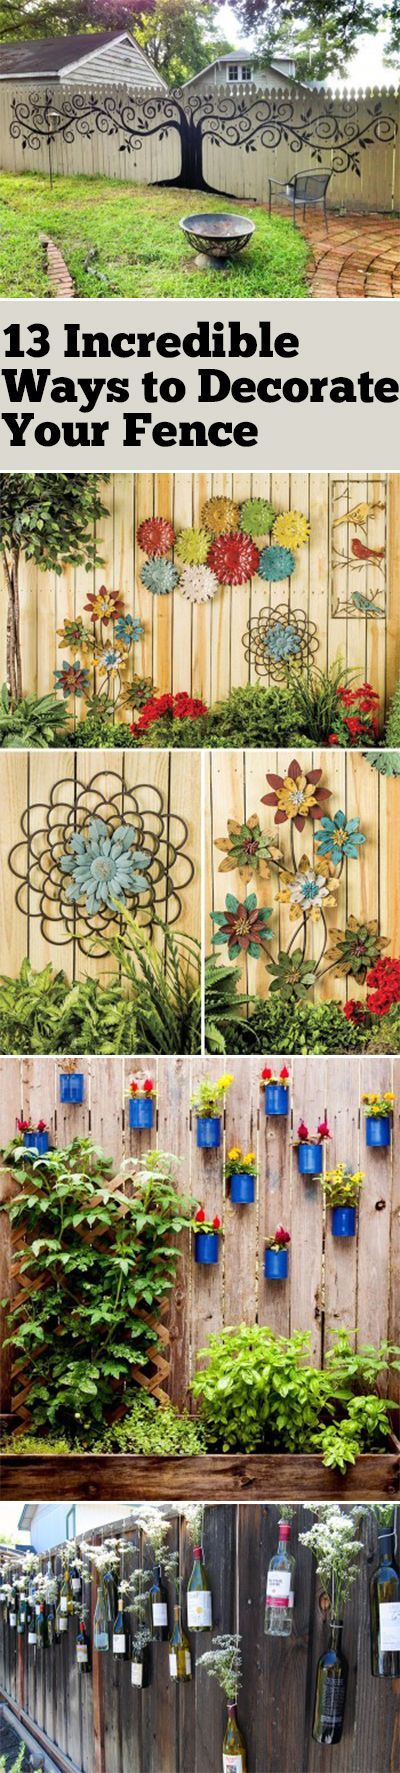 Outdoor living fence ideas fence decorations outdoor